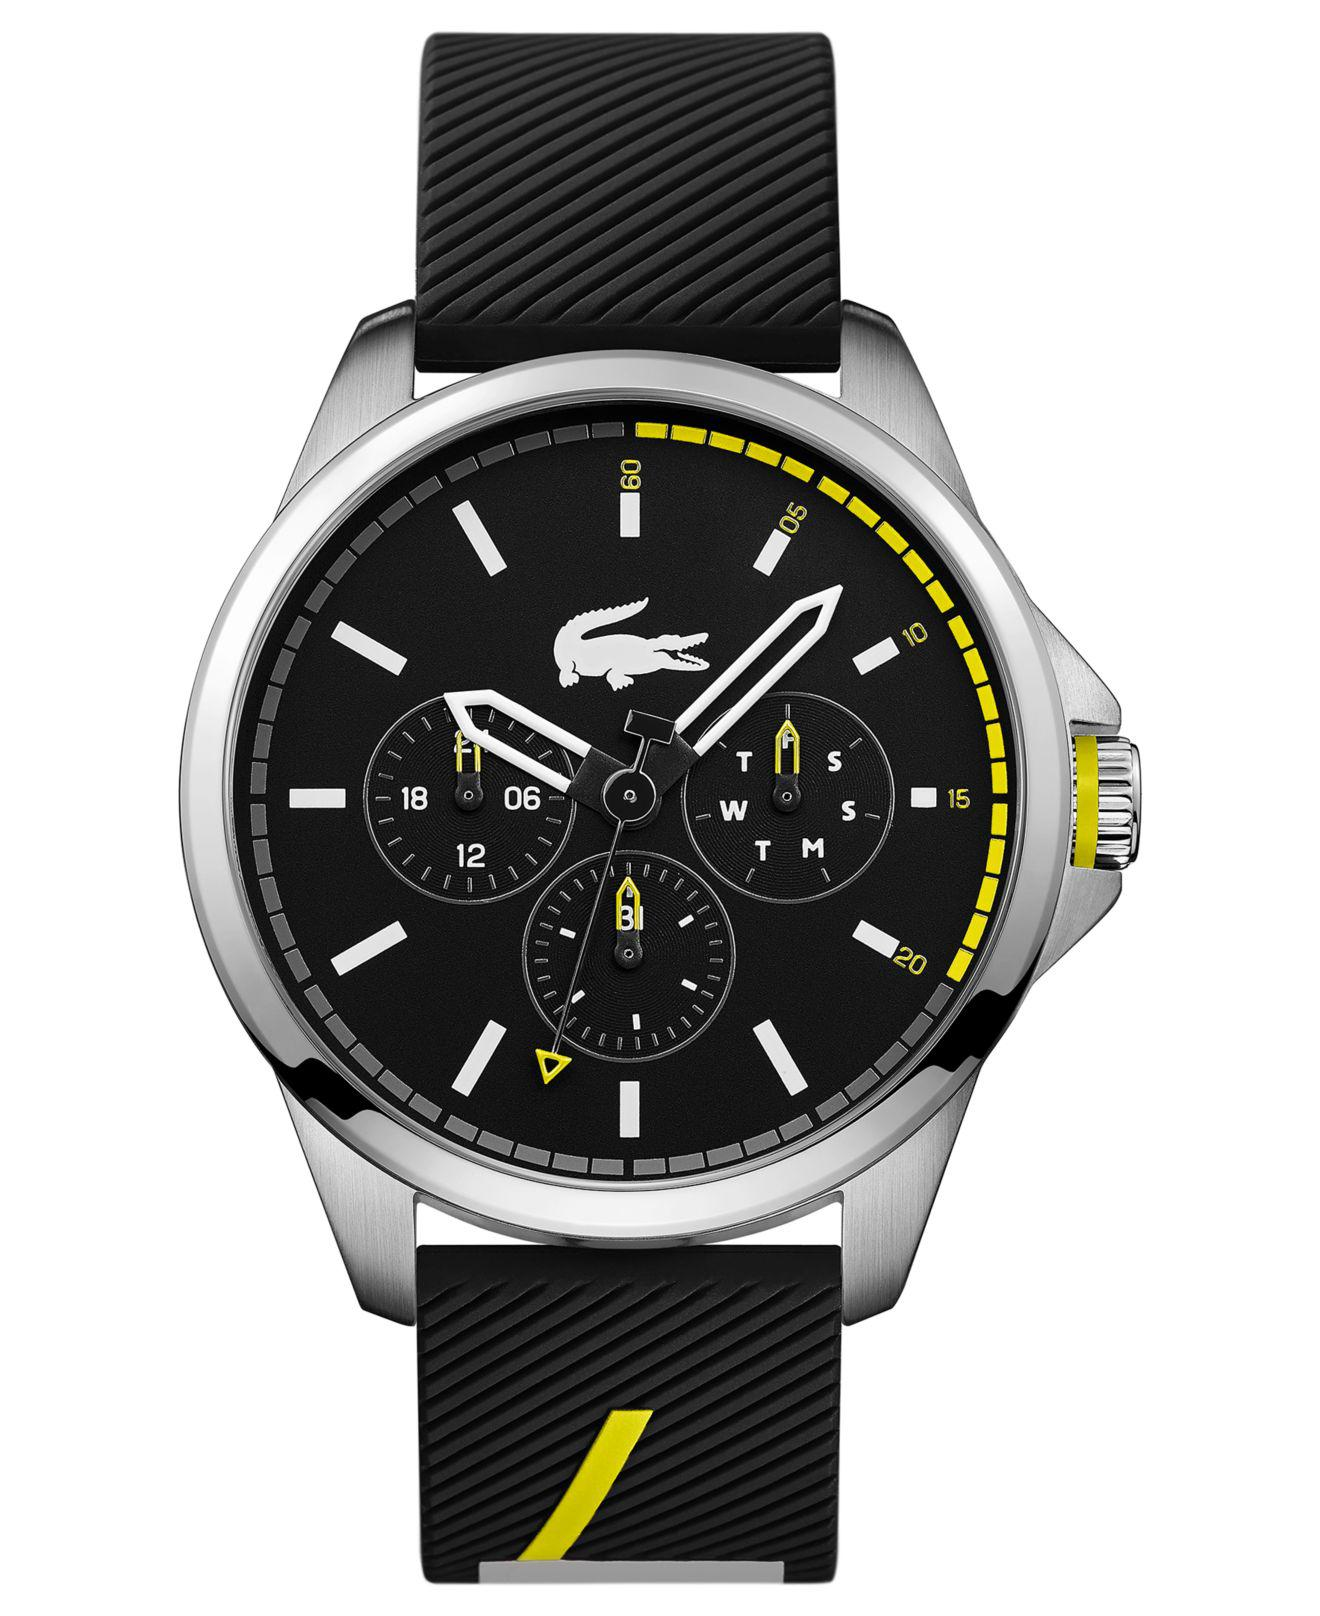 274ad66b9 ... Lacoste - Men's Black Analogue Silicone Strap Watch for Men - Lyst.  Visit Macy's. Tap to visit site